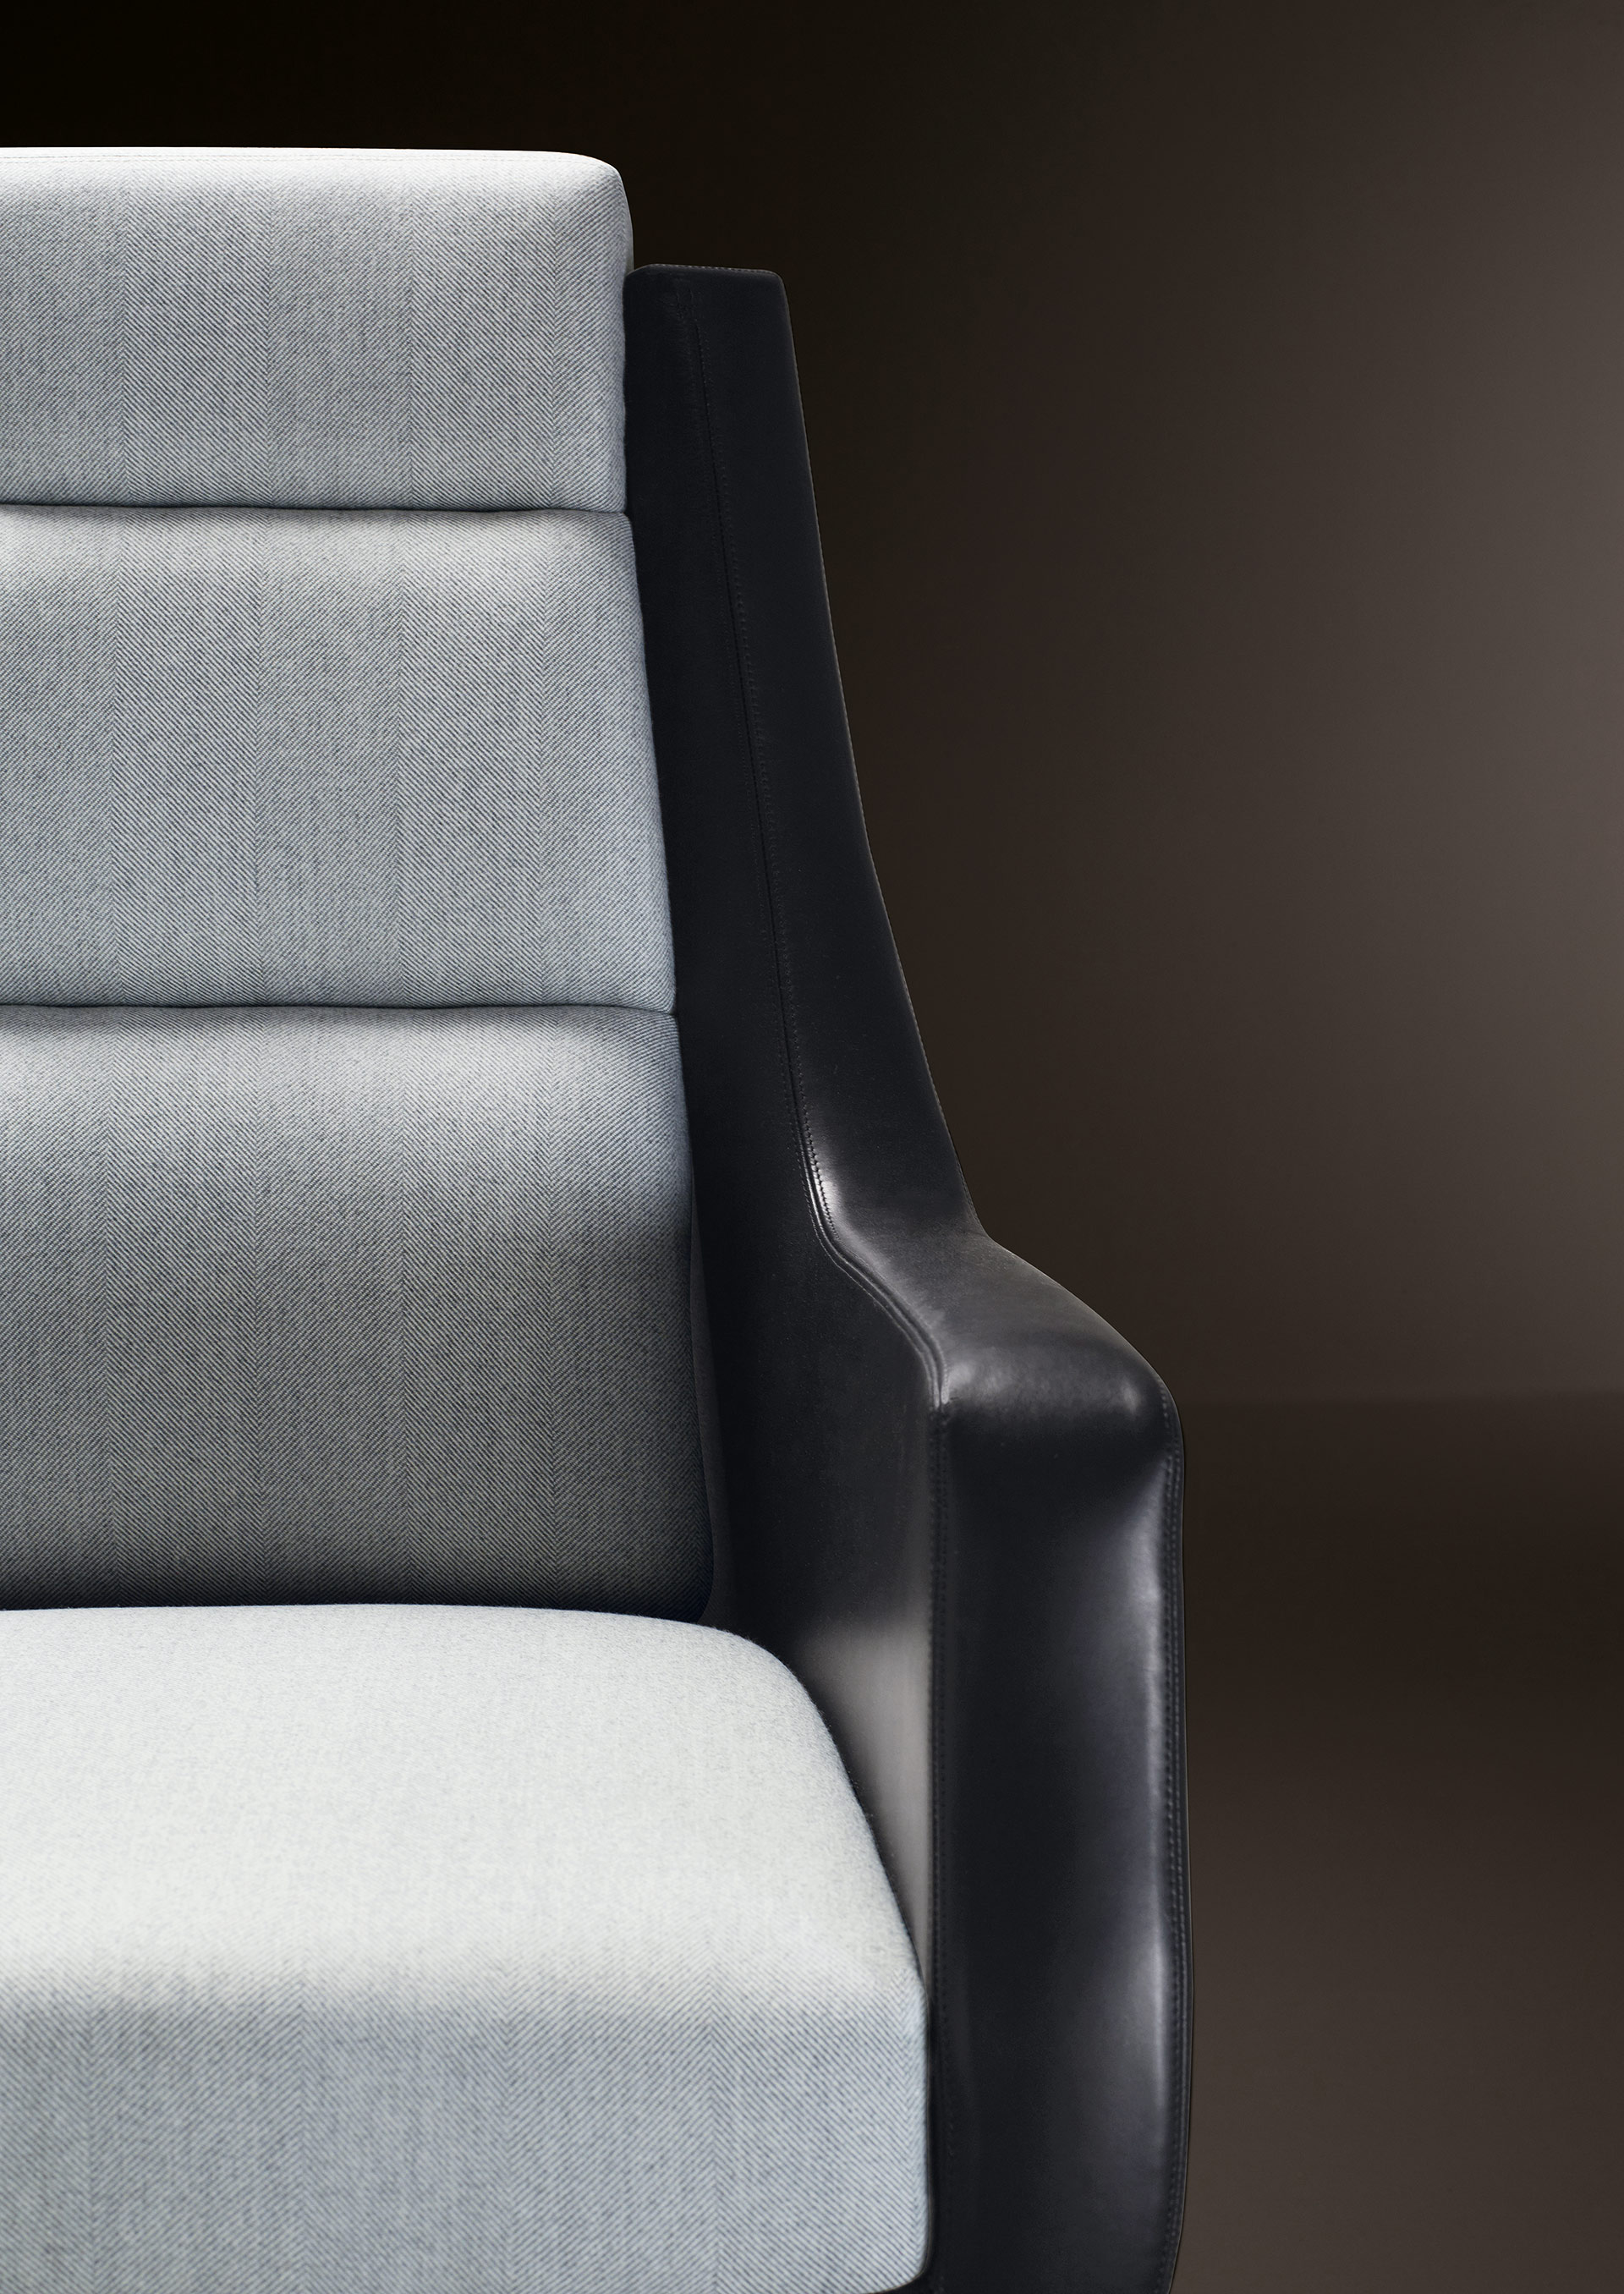 Detail of Kate, an office chair with a metal base covered in leather and fabric, from Promemoria's Amaranthine Tales collection | Promemoria